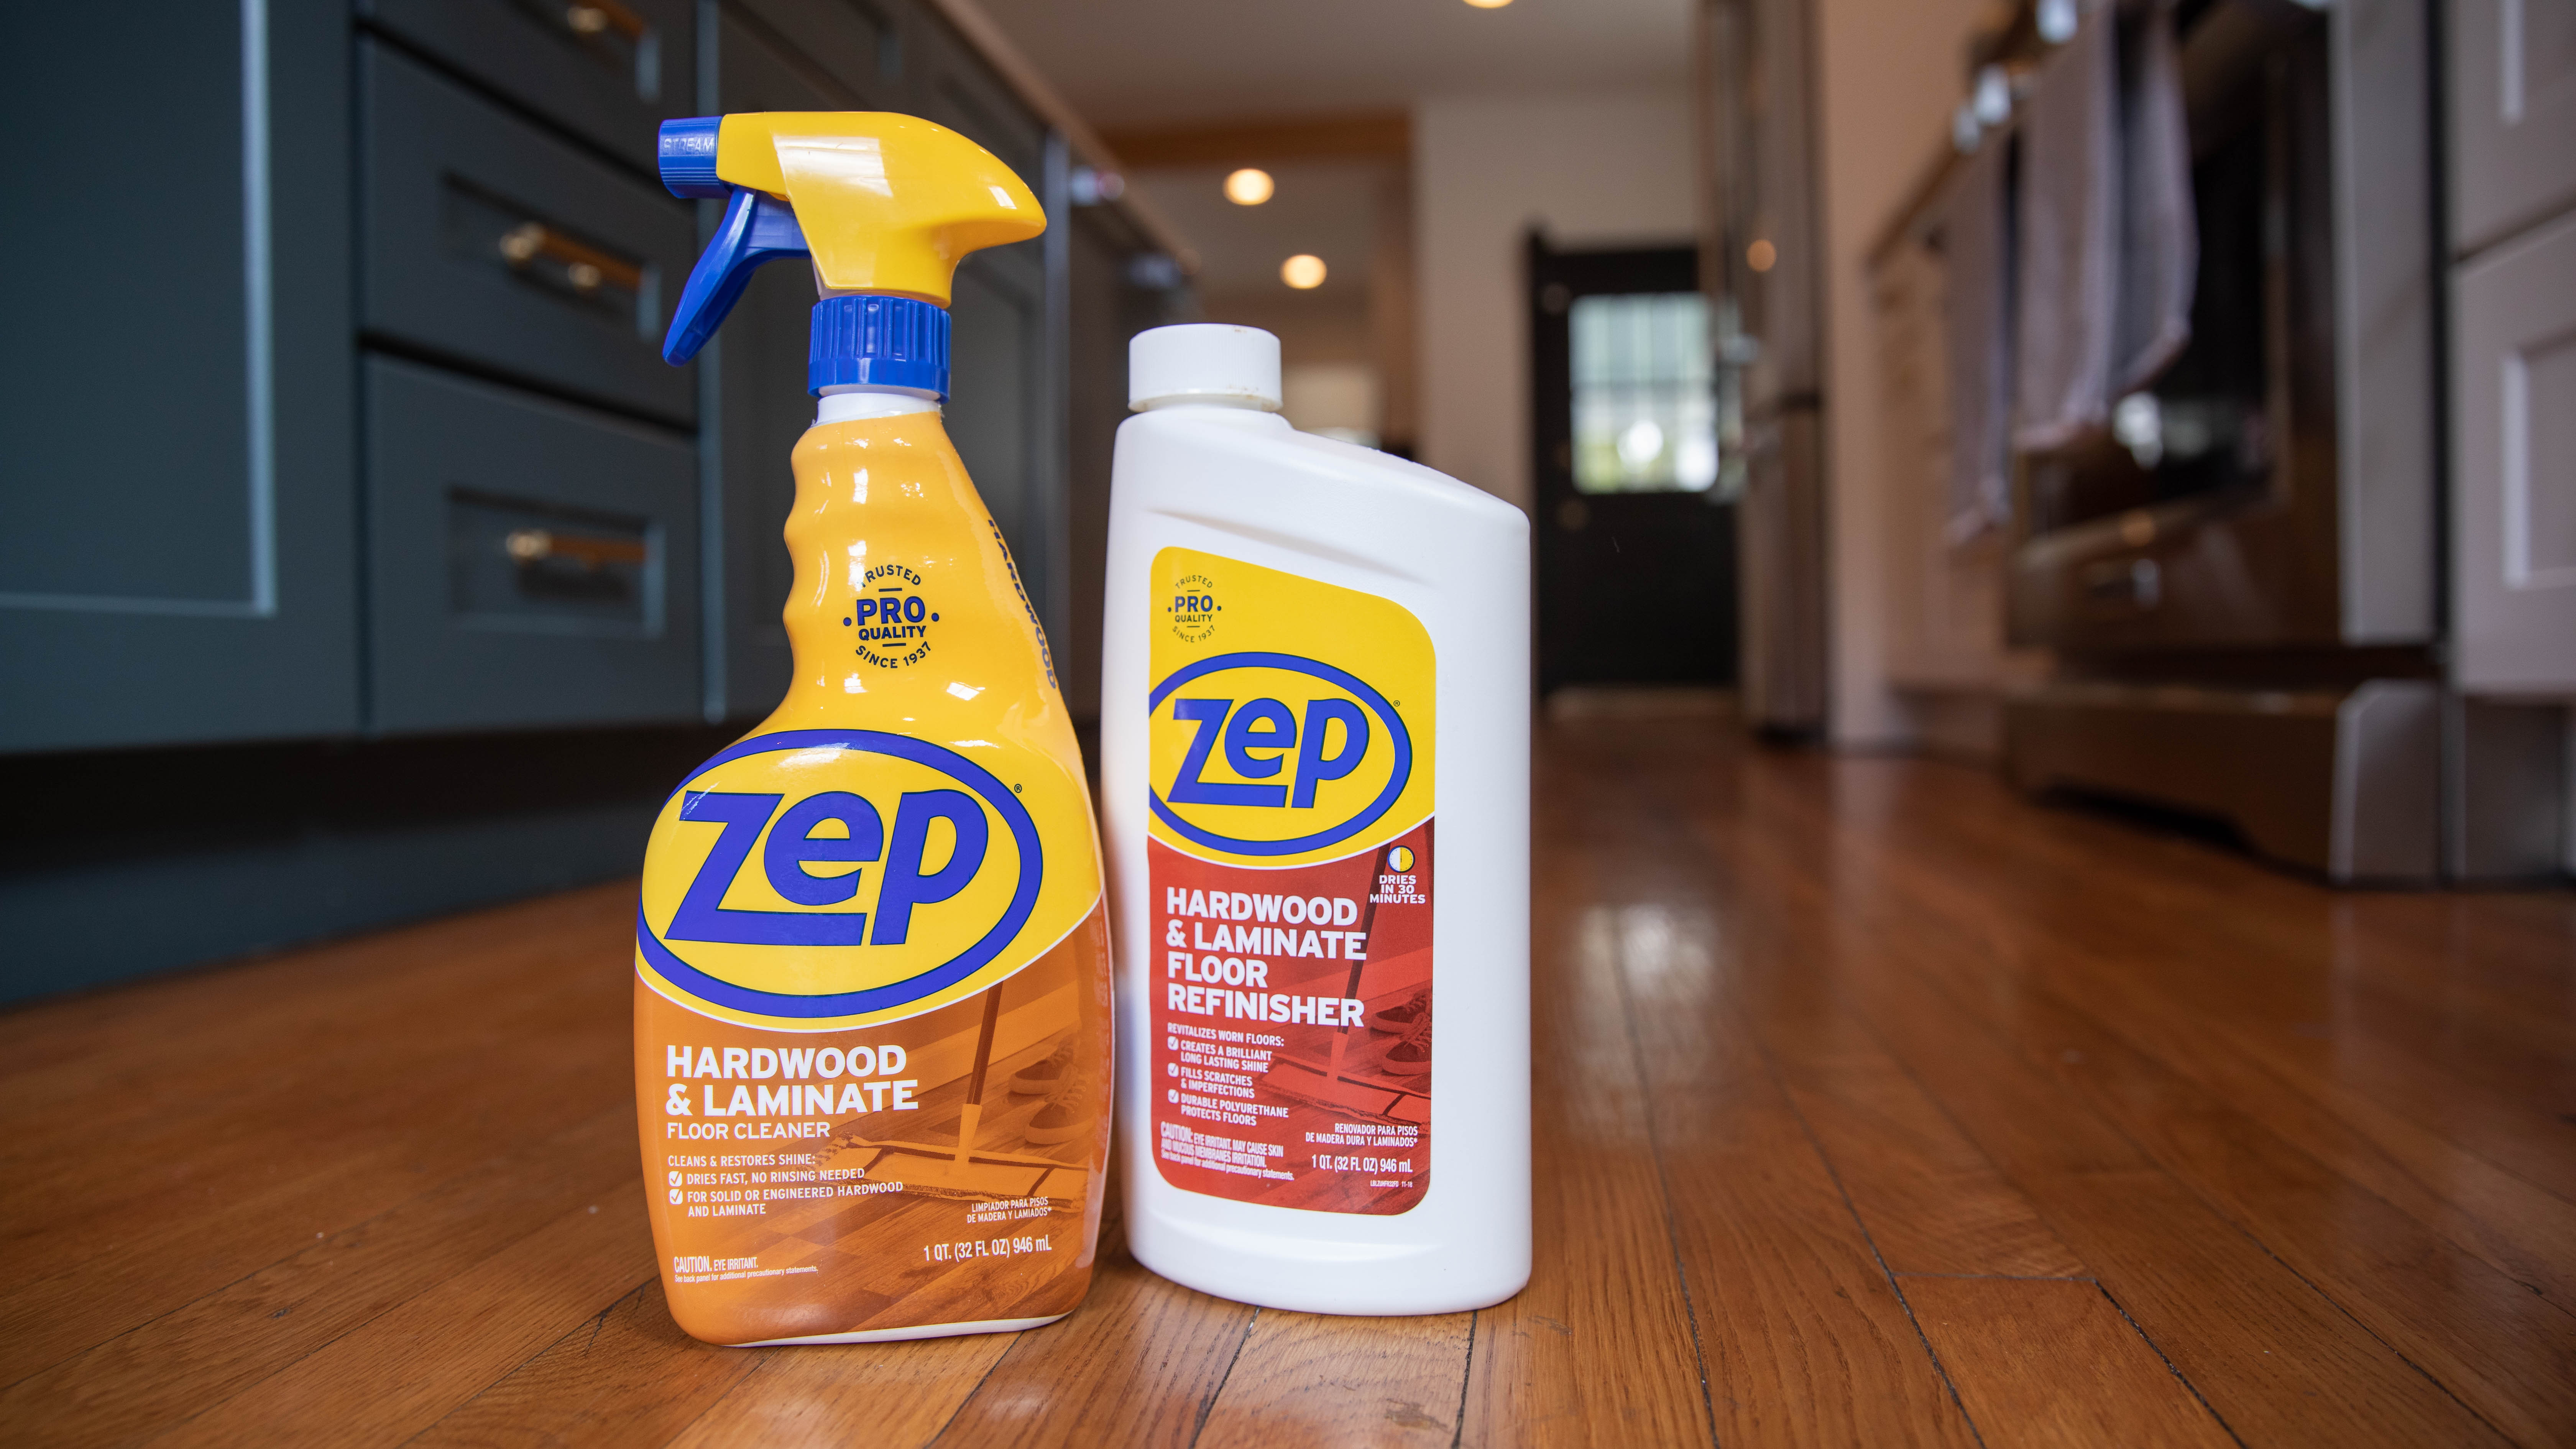 Zep_Hardwood_And_Laminate_Floor_Cleaner_And_Floor_Refinisher